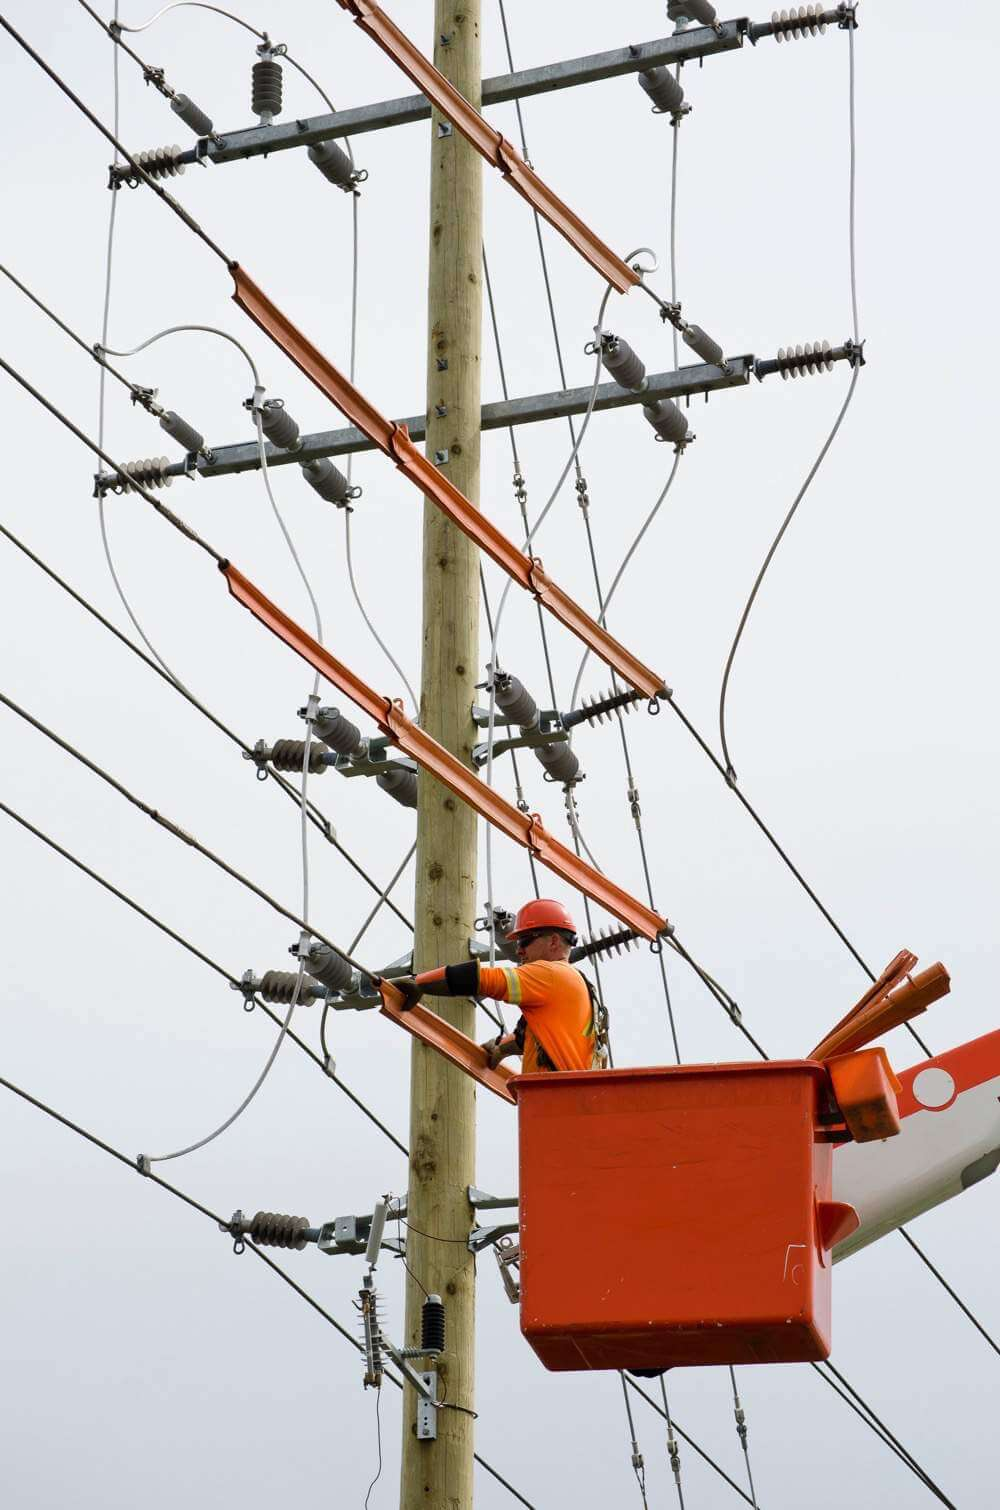 Lineman working on lines up high in bucket